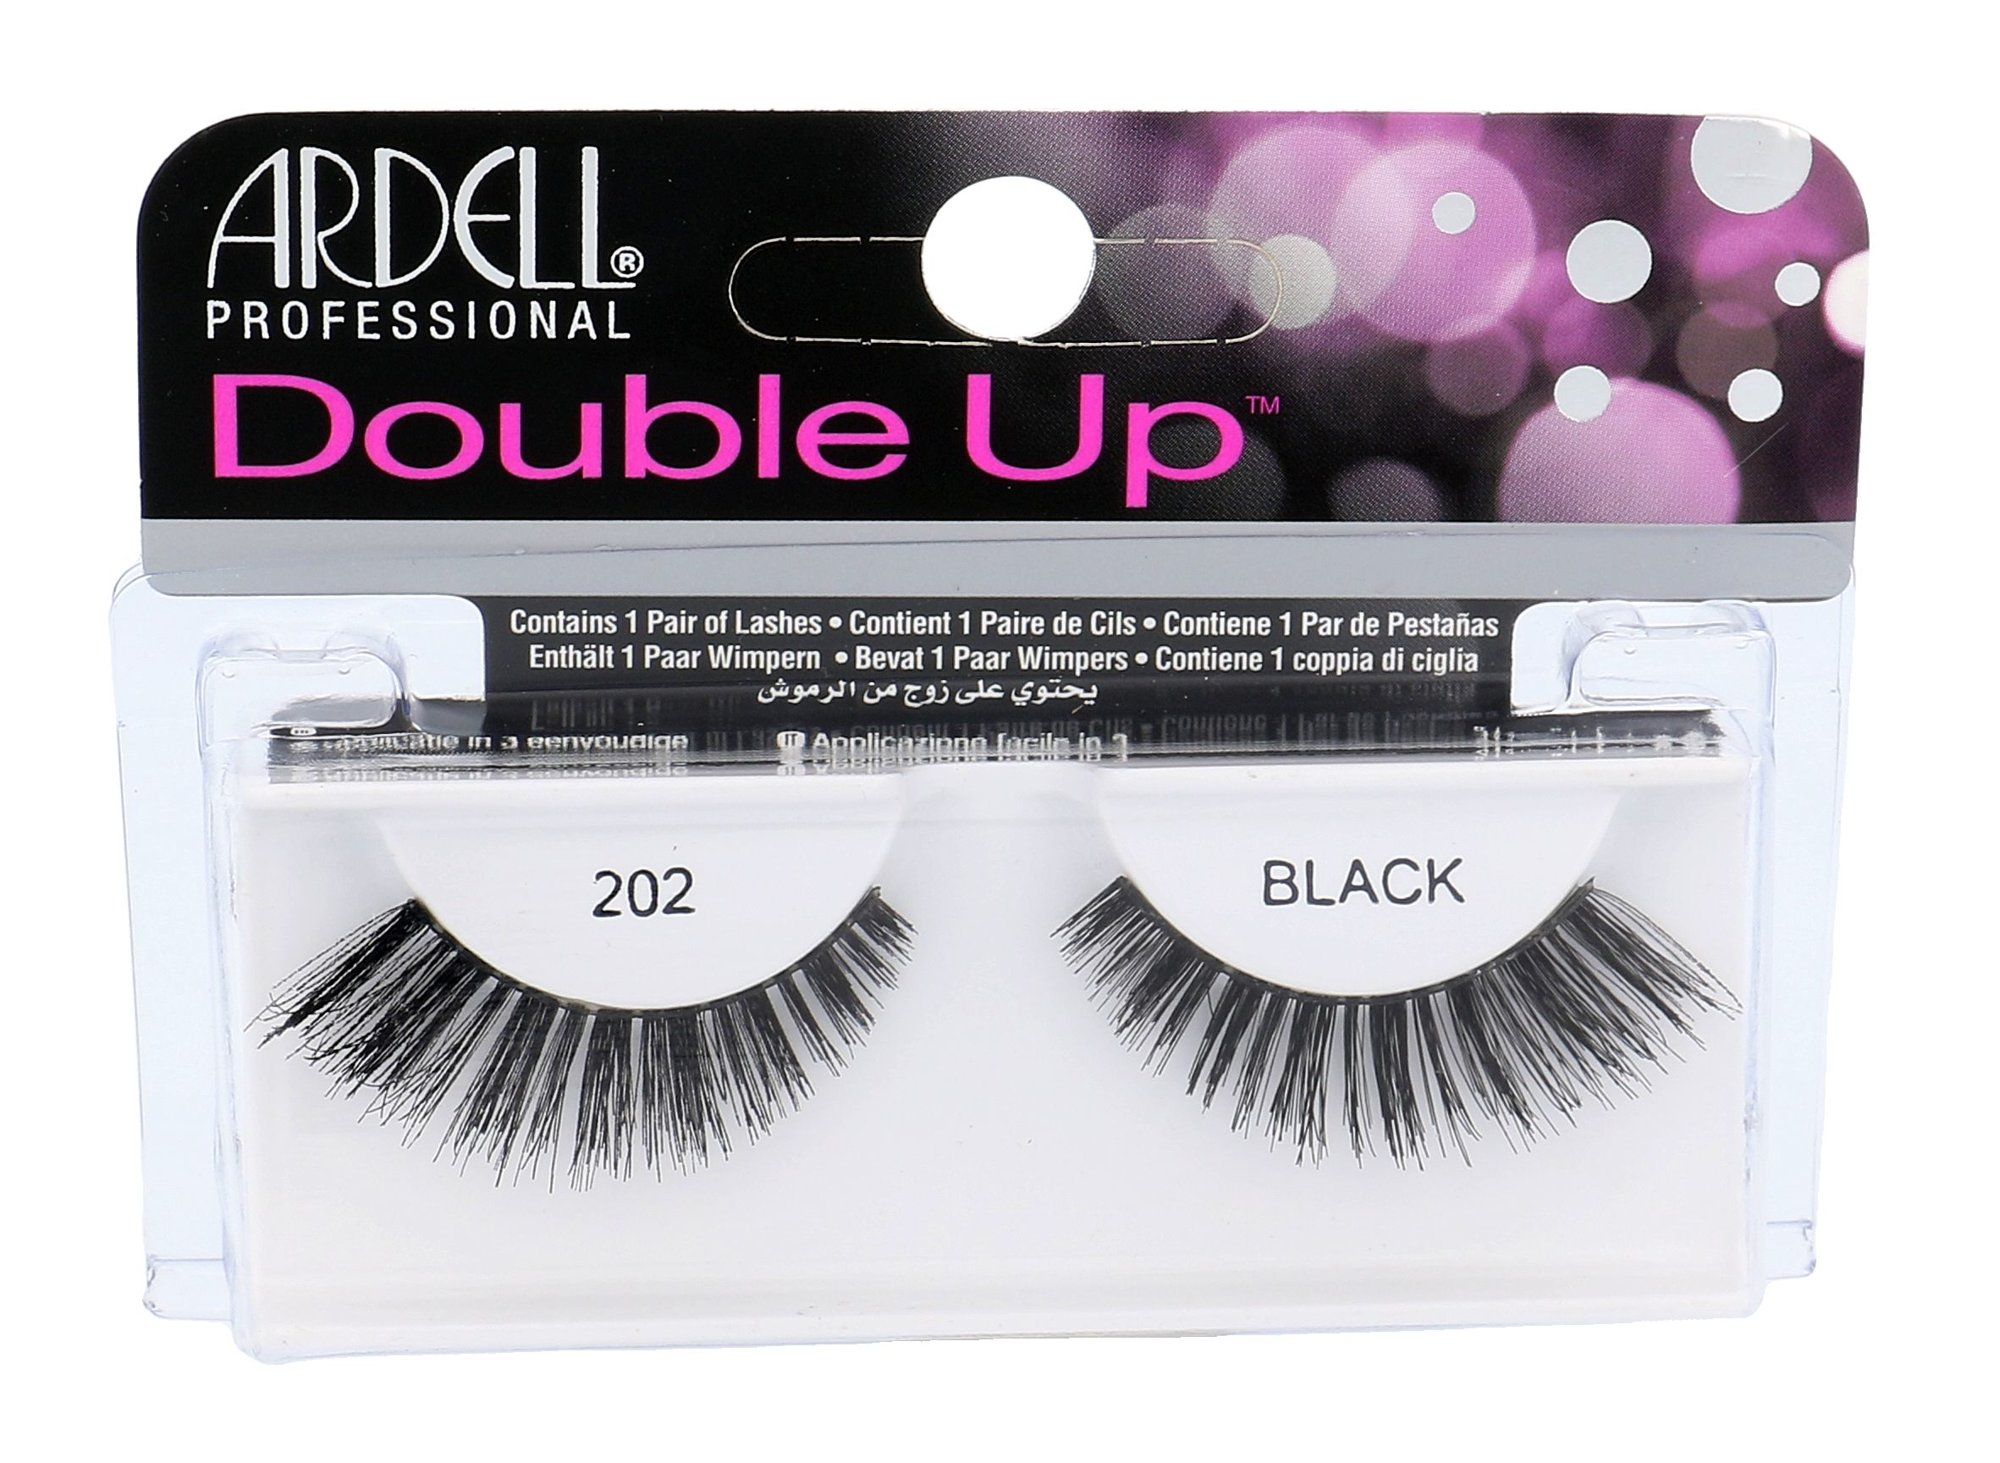 Ardell Double Up 202 Wispies Cosmetic 1ks Black